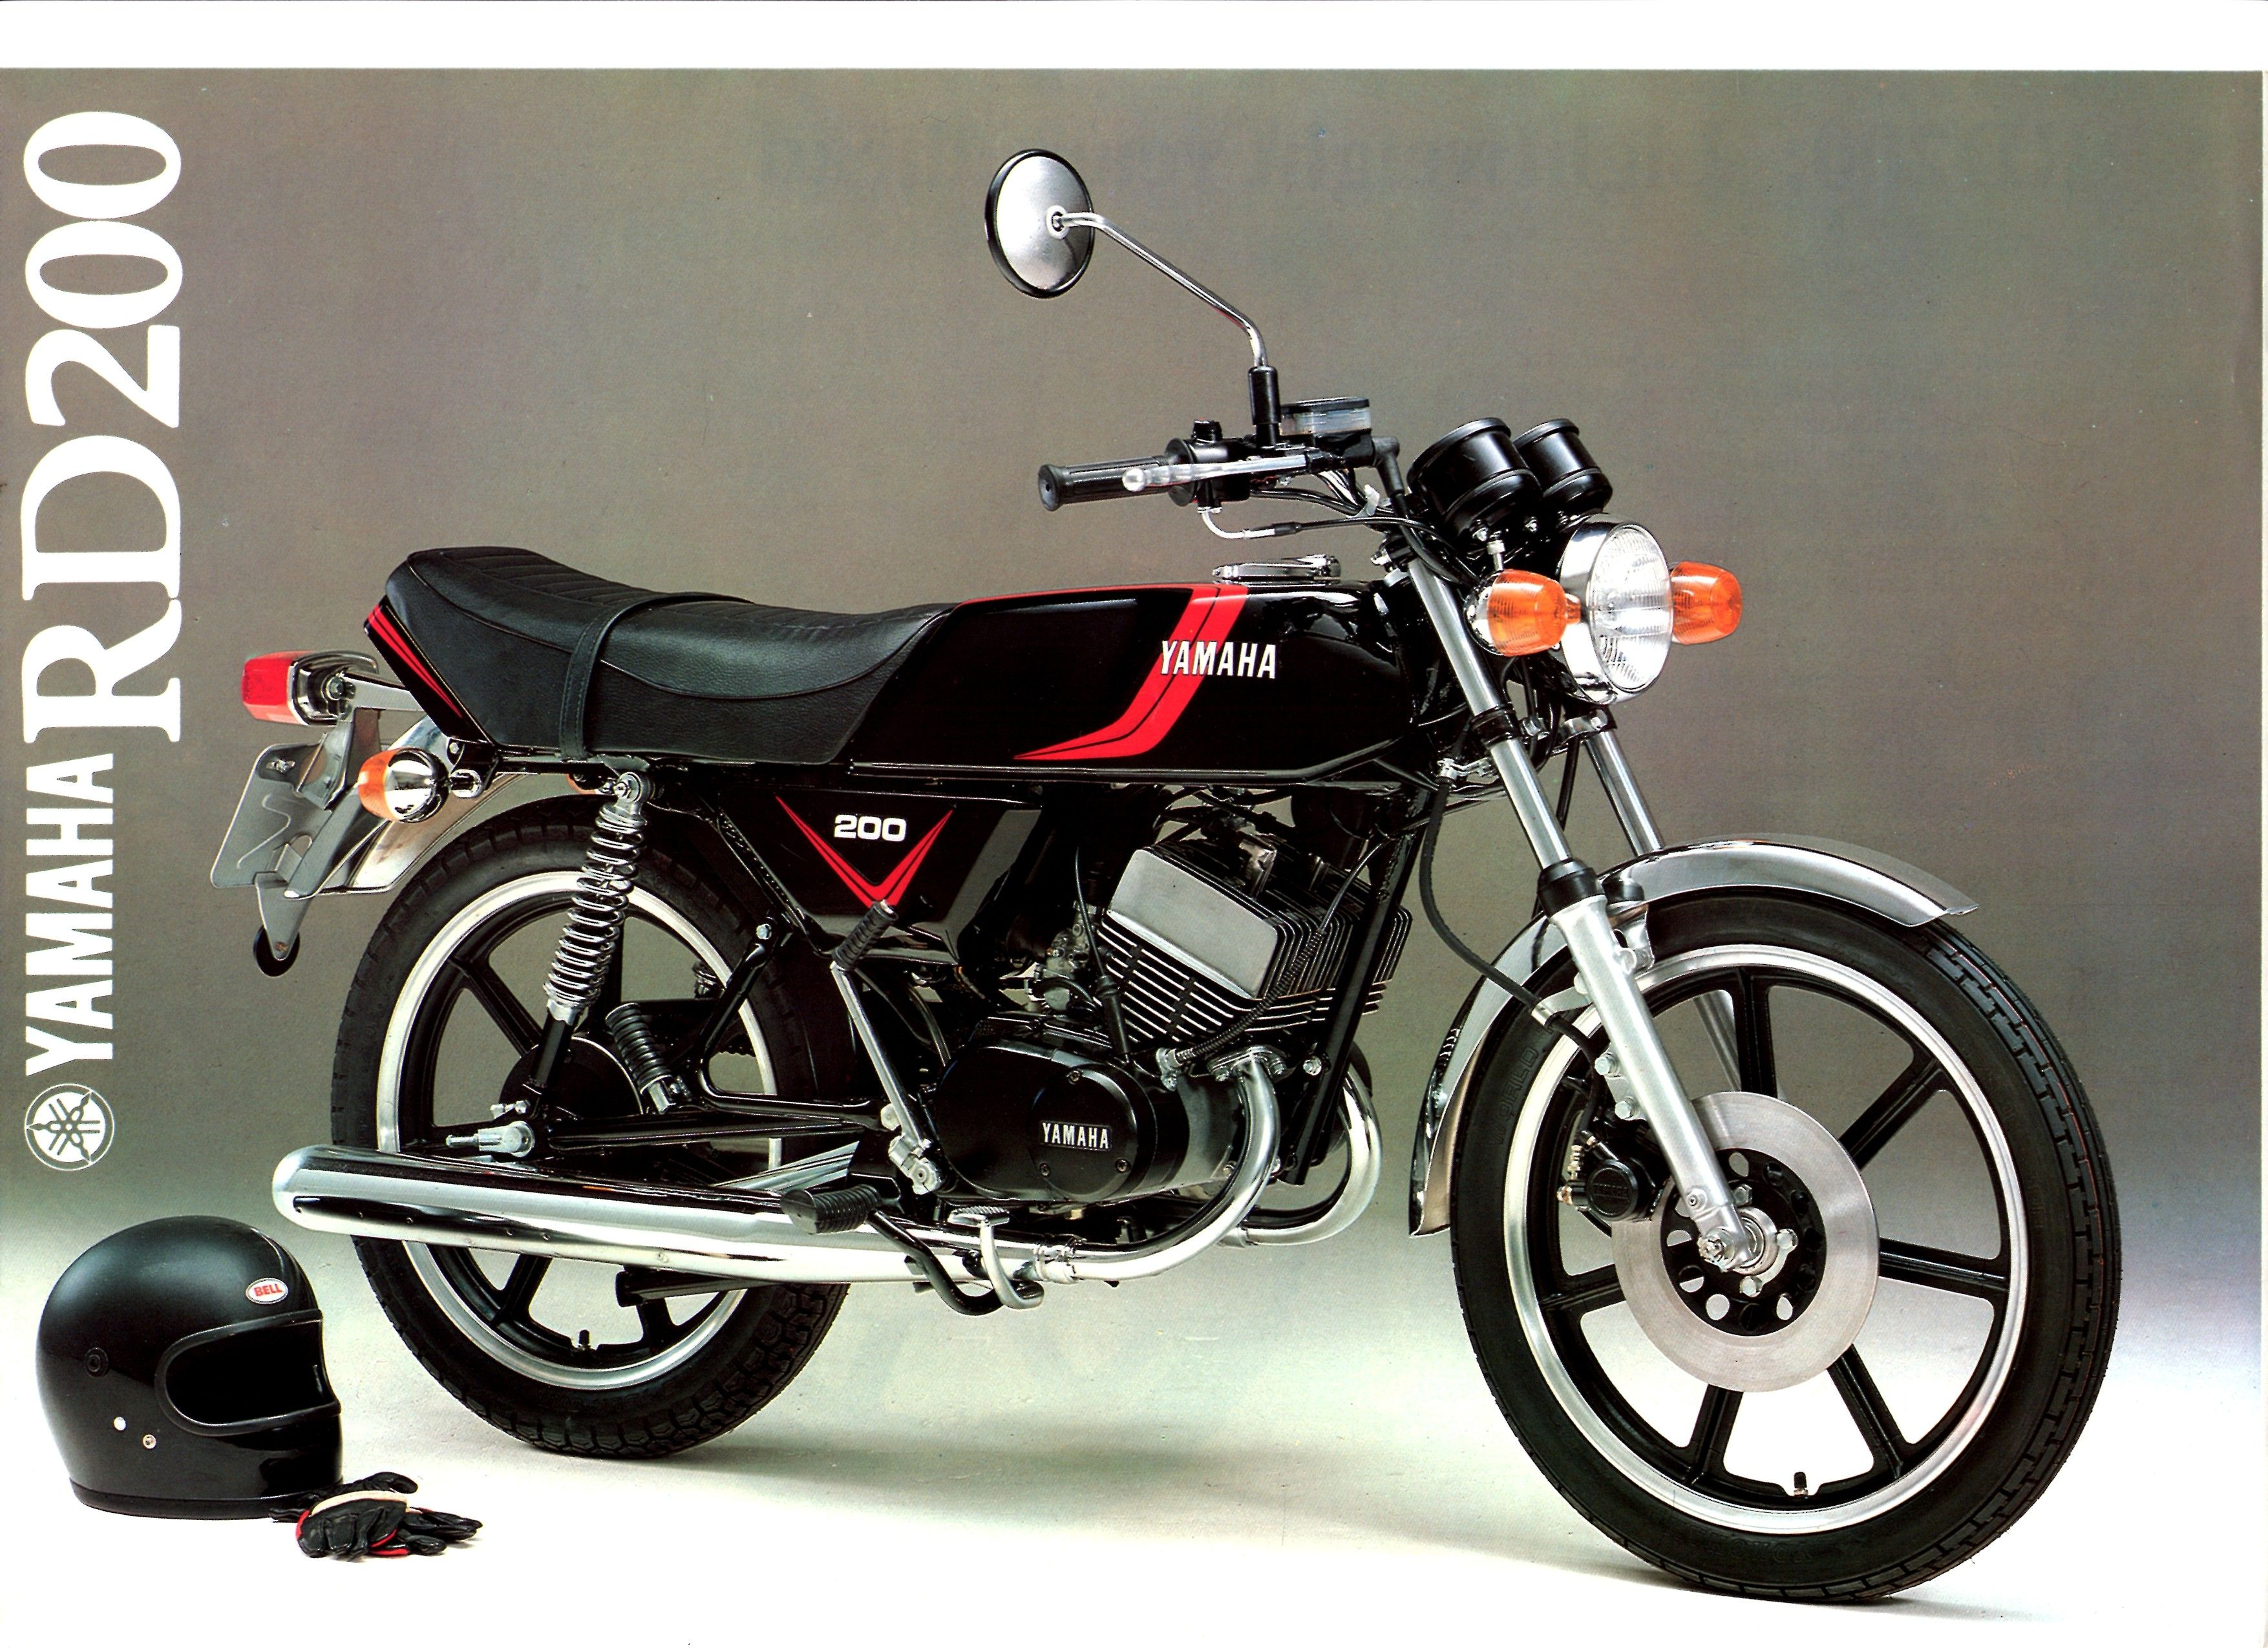 1980 Yamaha RD200 Brochure - front cover